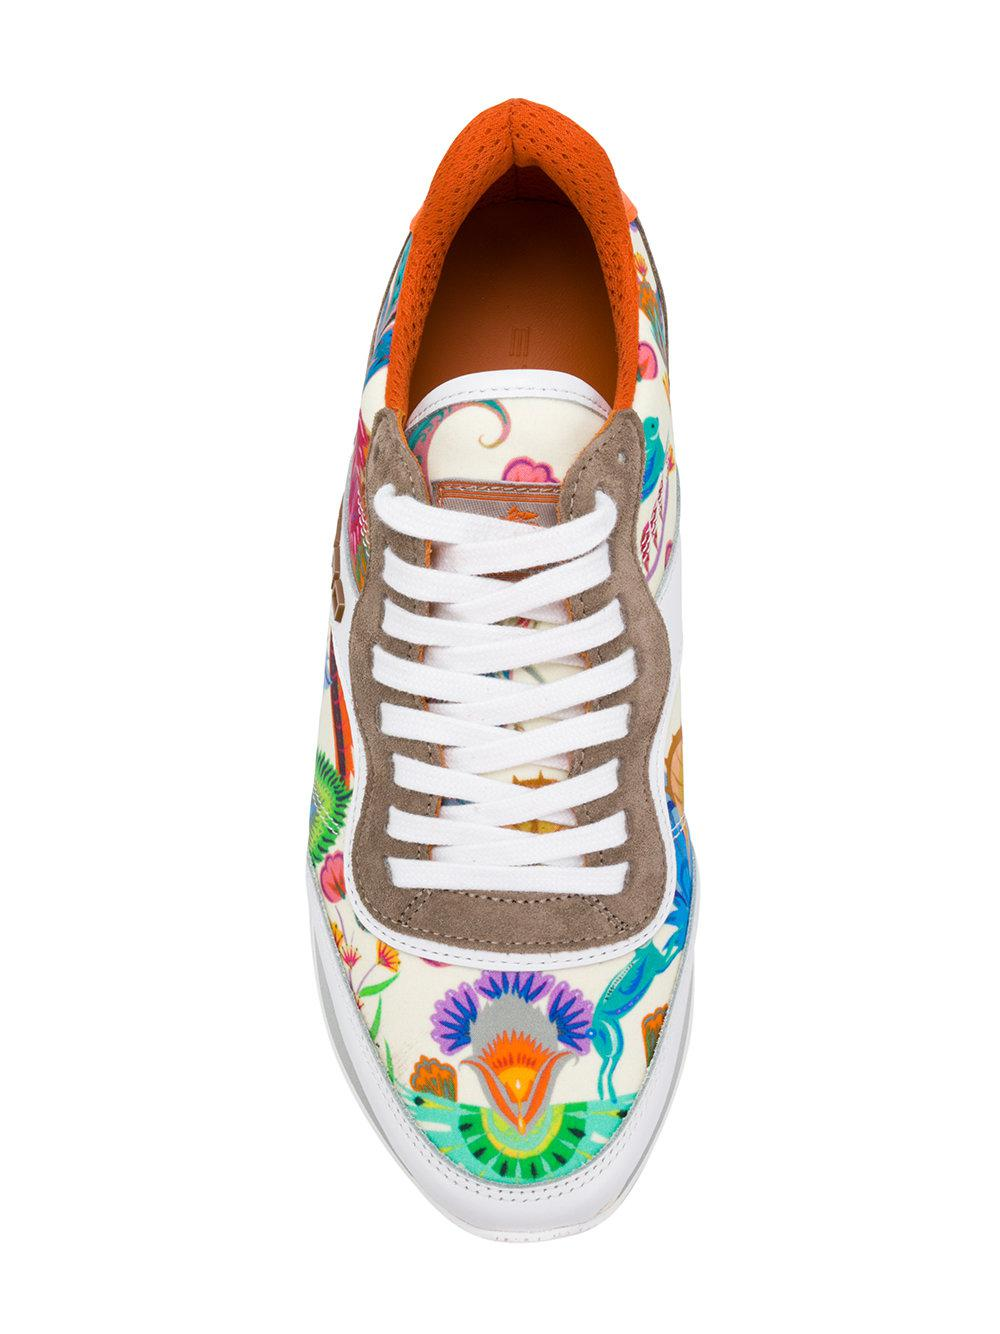 Etro Leather 20mm Paisley Satin Running Sneakers